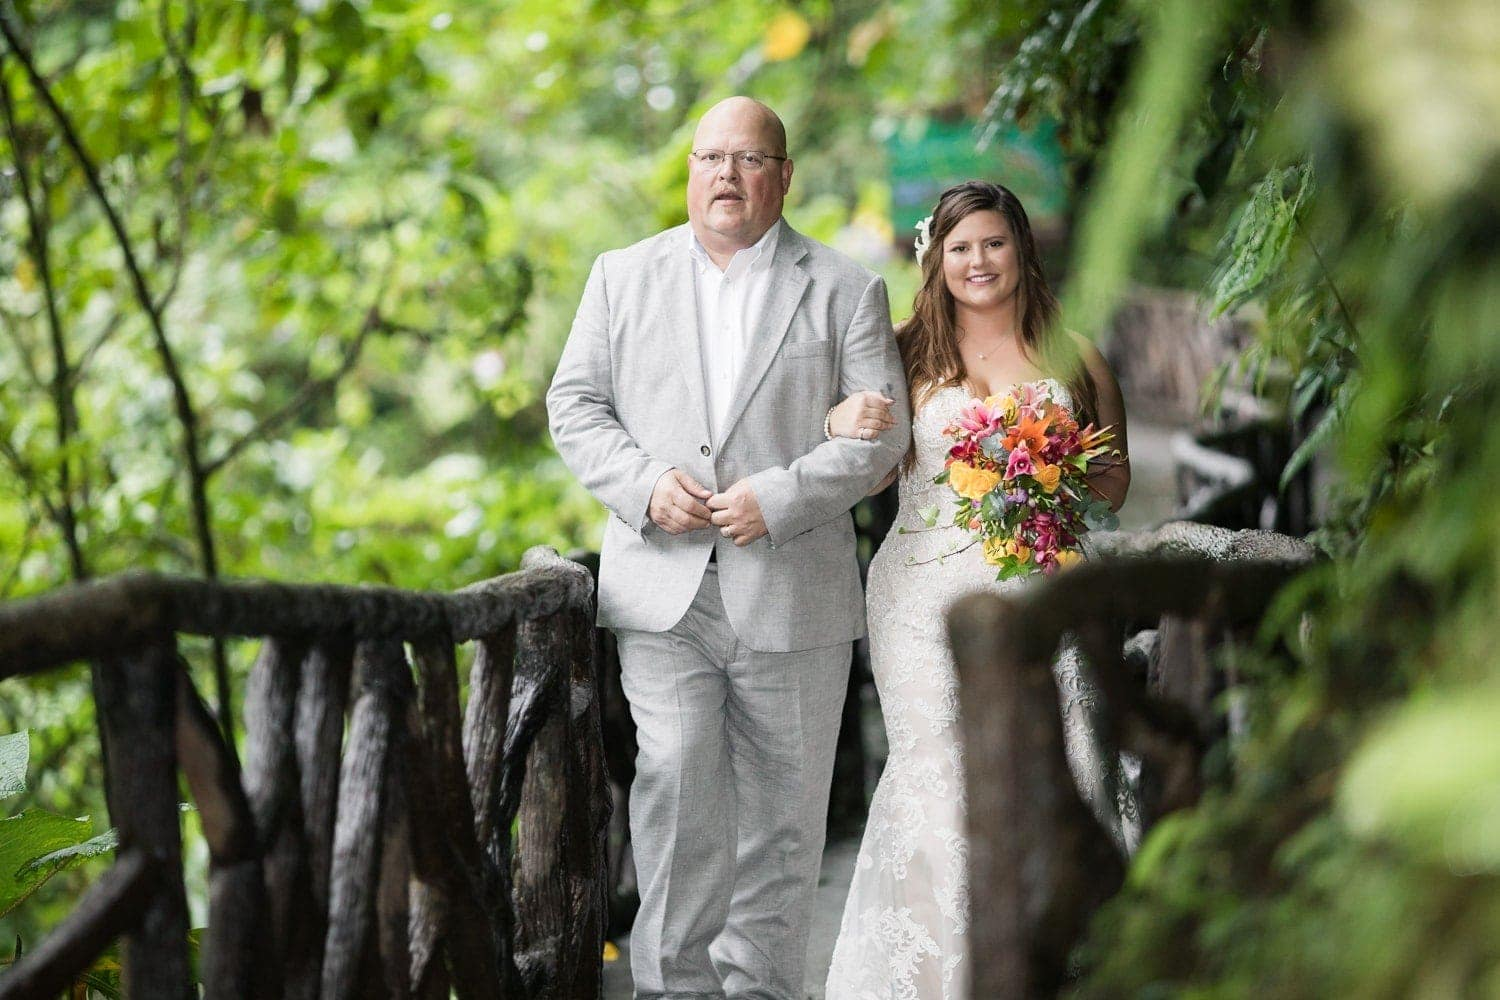 Julianne-Michael-wedding-ceremony-La-Paz-Waterfall-Gardens-Costa-Rica-6.jpg